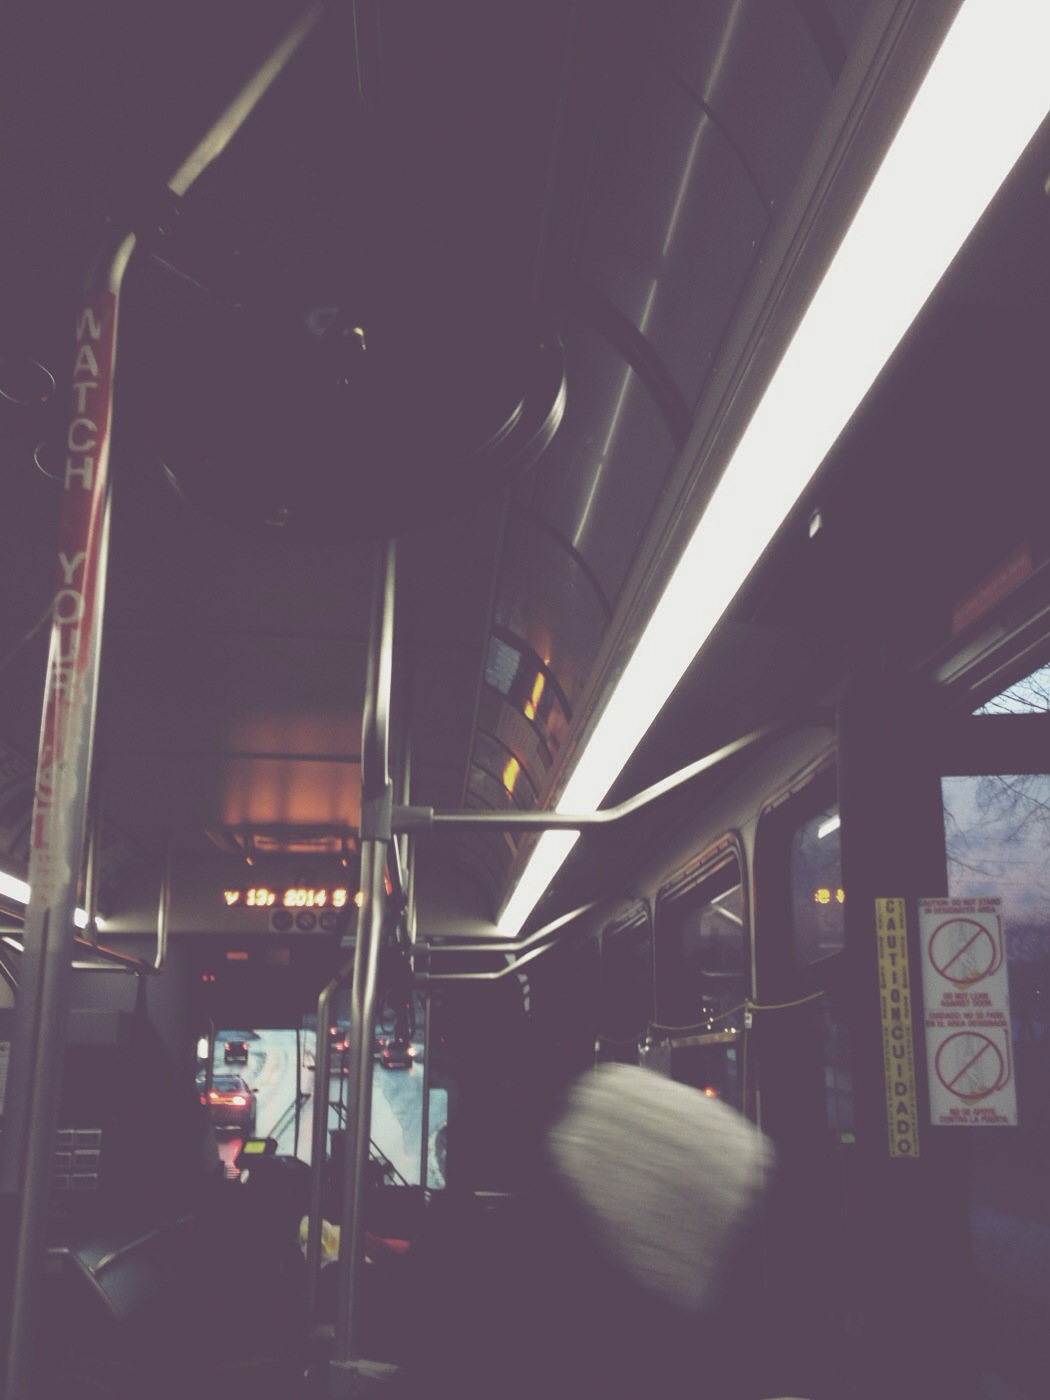 disembark via iPhone/VSCO Cam